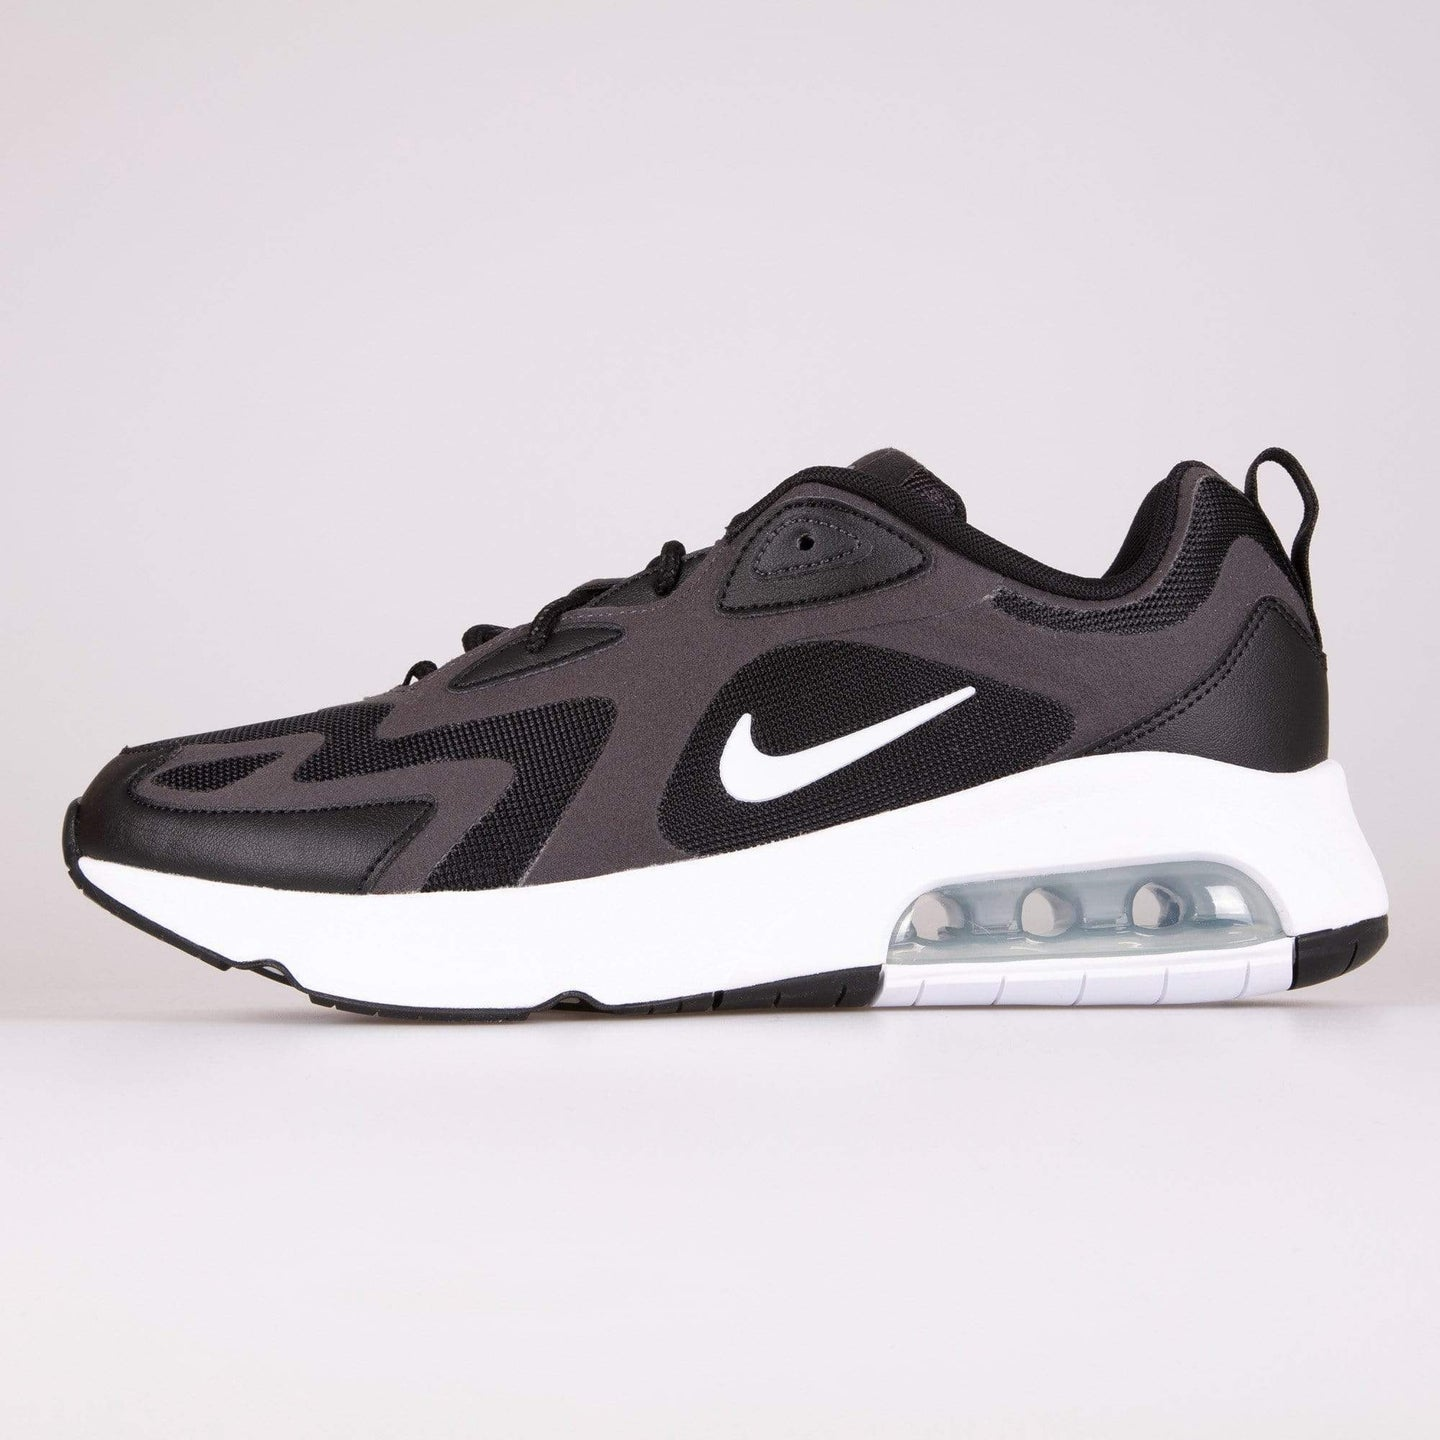 Nike Air Max 200 - Black / White UK 7 CI38650017 193654138387 Nike Trainers